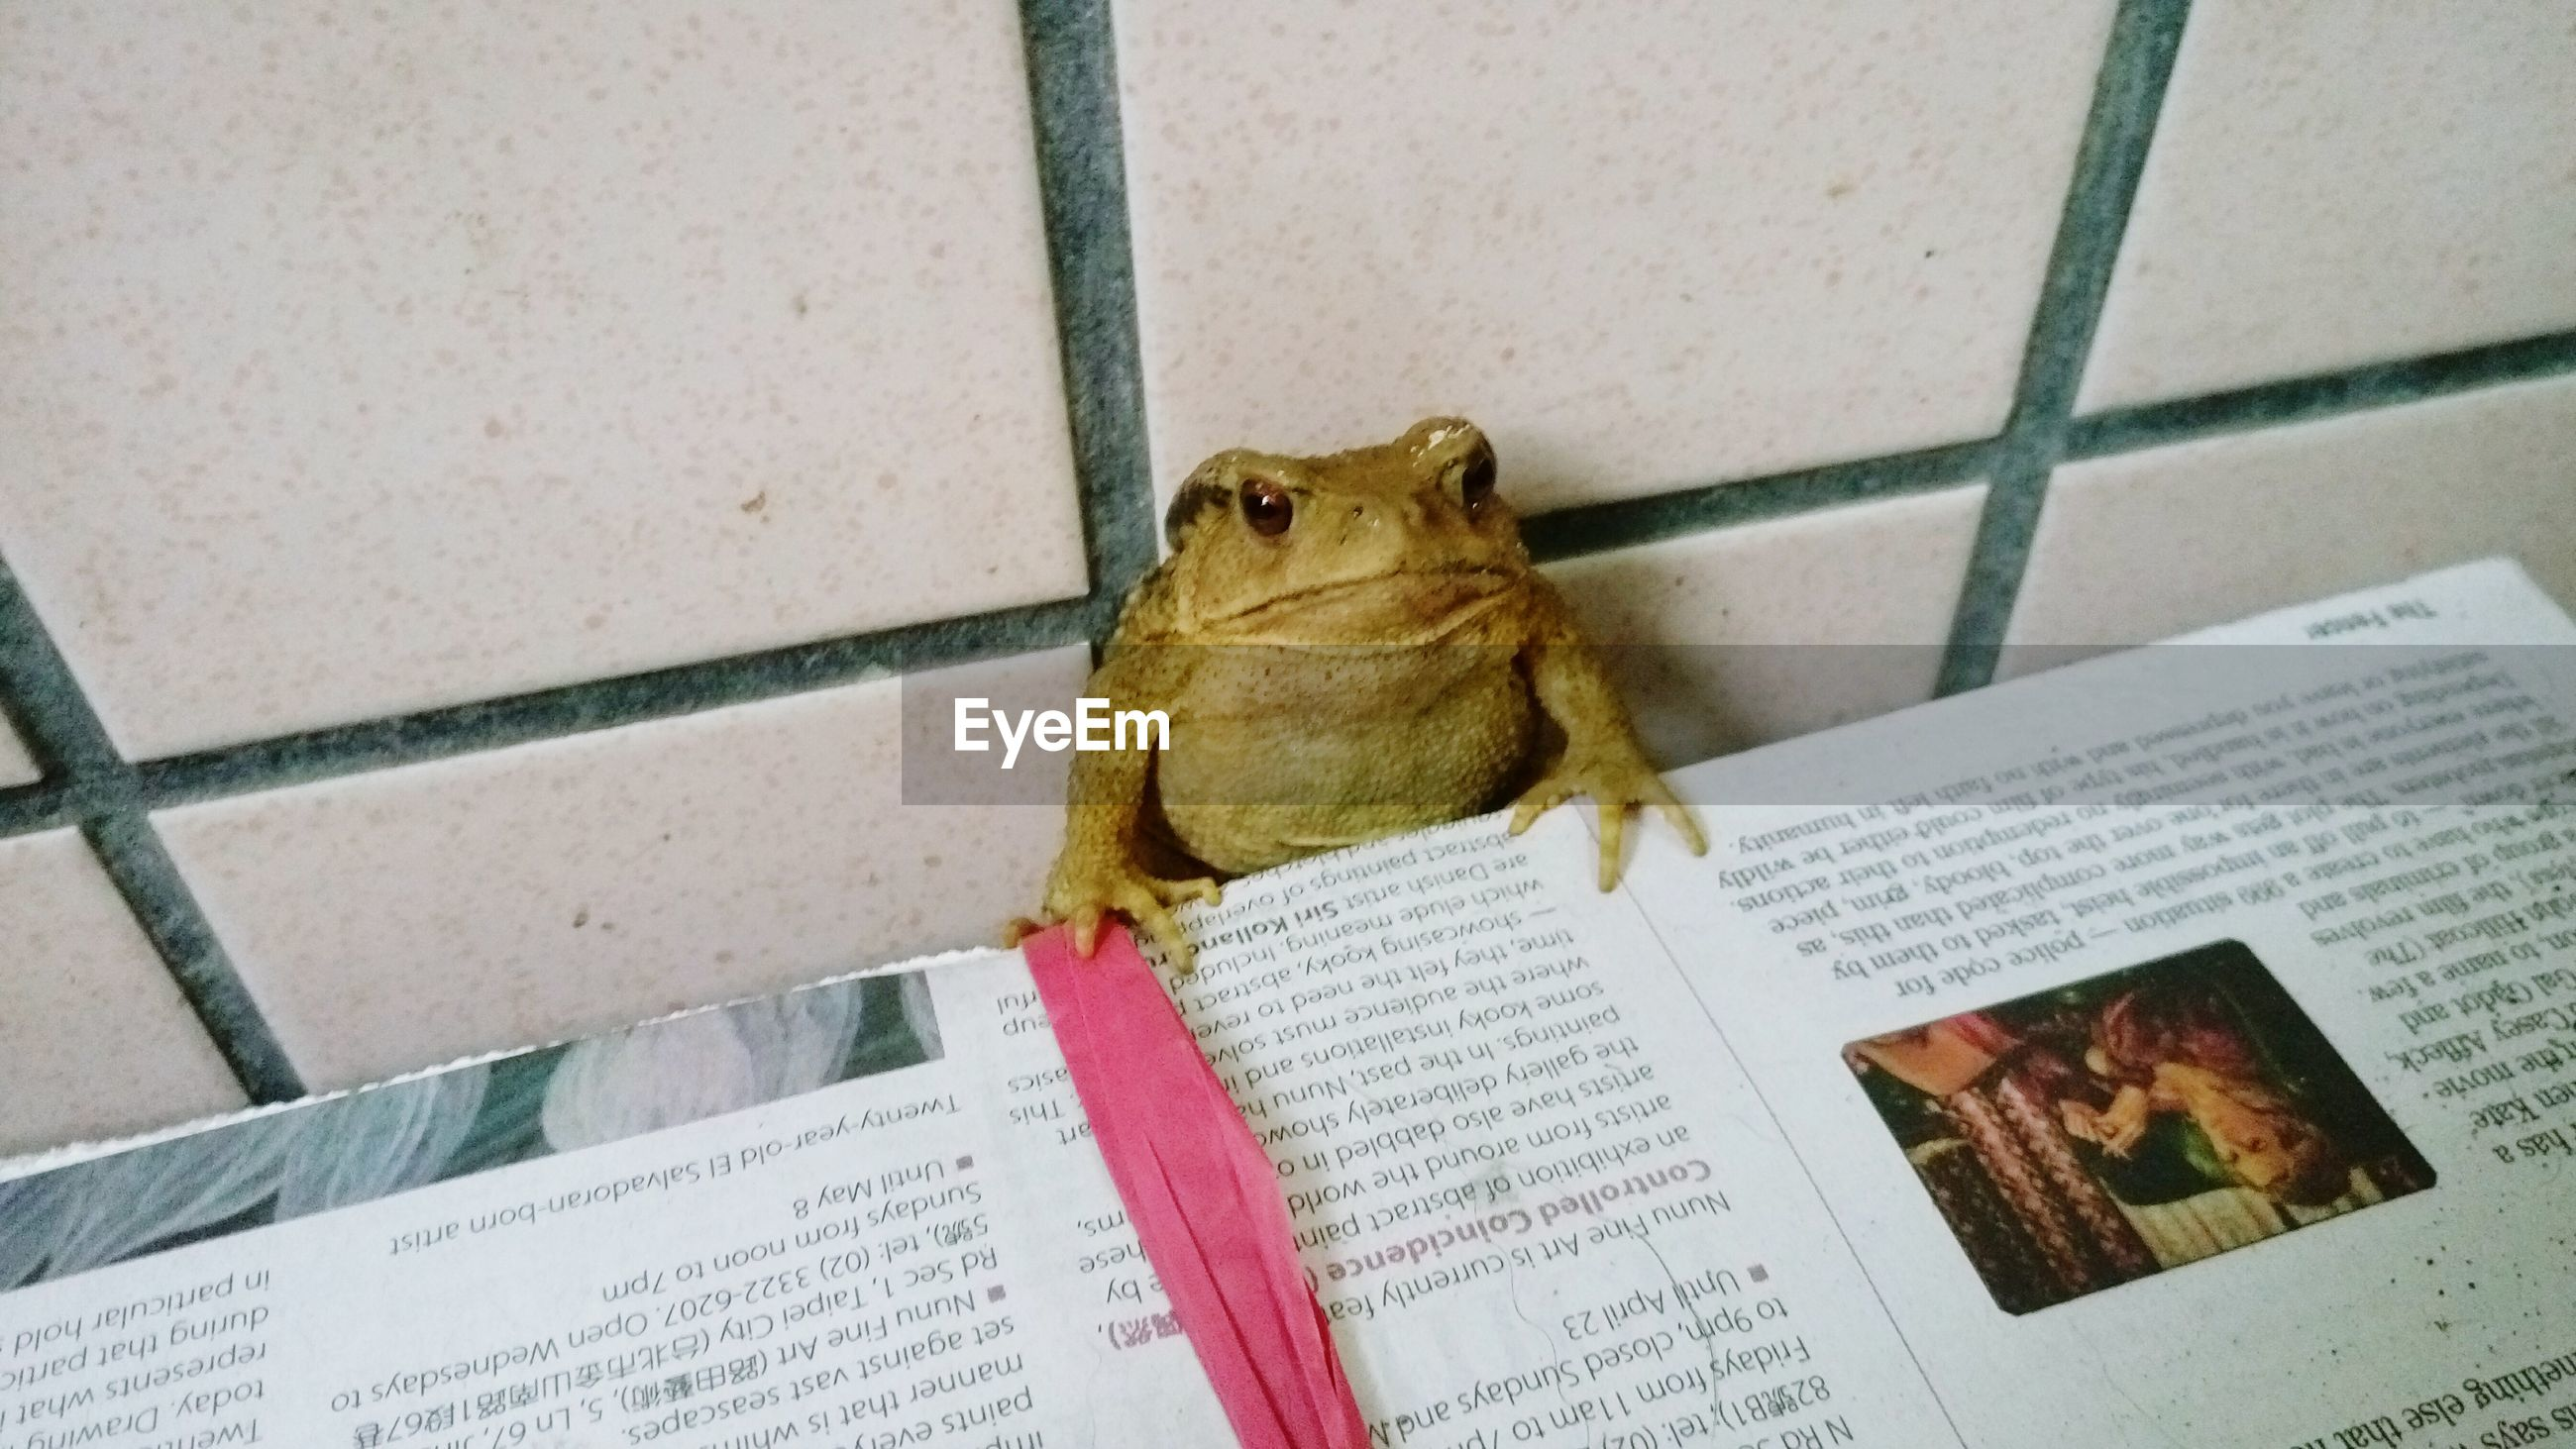 Low angle portrait of a frog